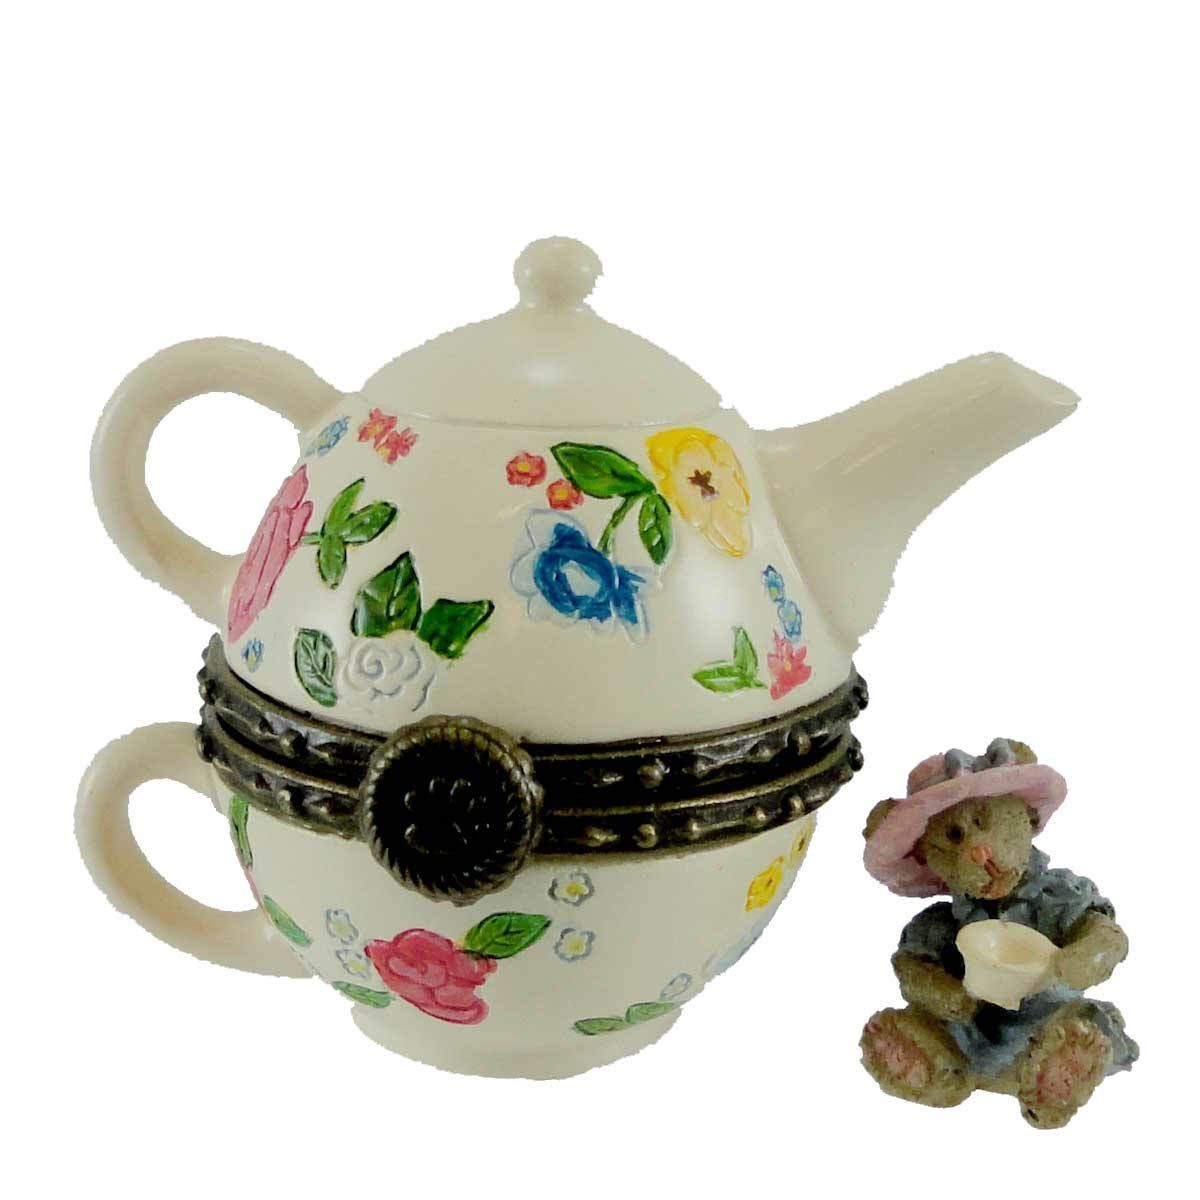 "Primary image for Boyds Treasure Box ""GRANNY MAE'S TEAPOT"" #4015204- 1E- NIB 2009"